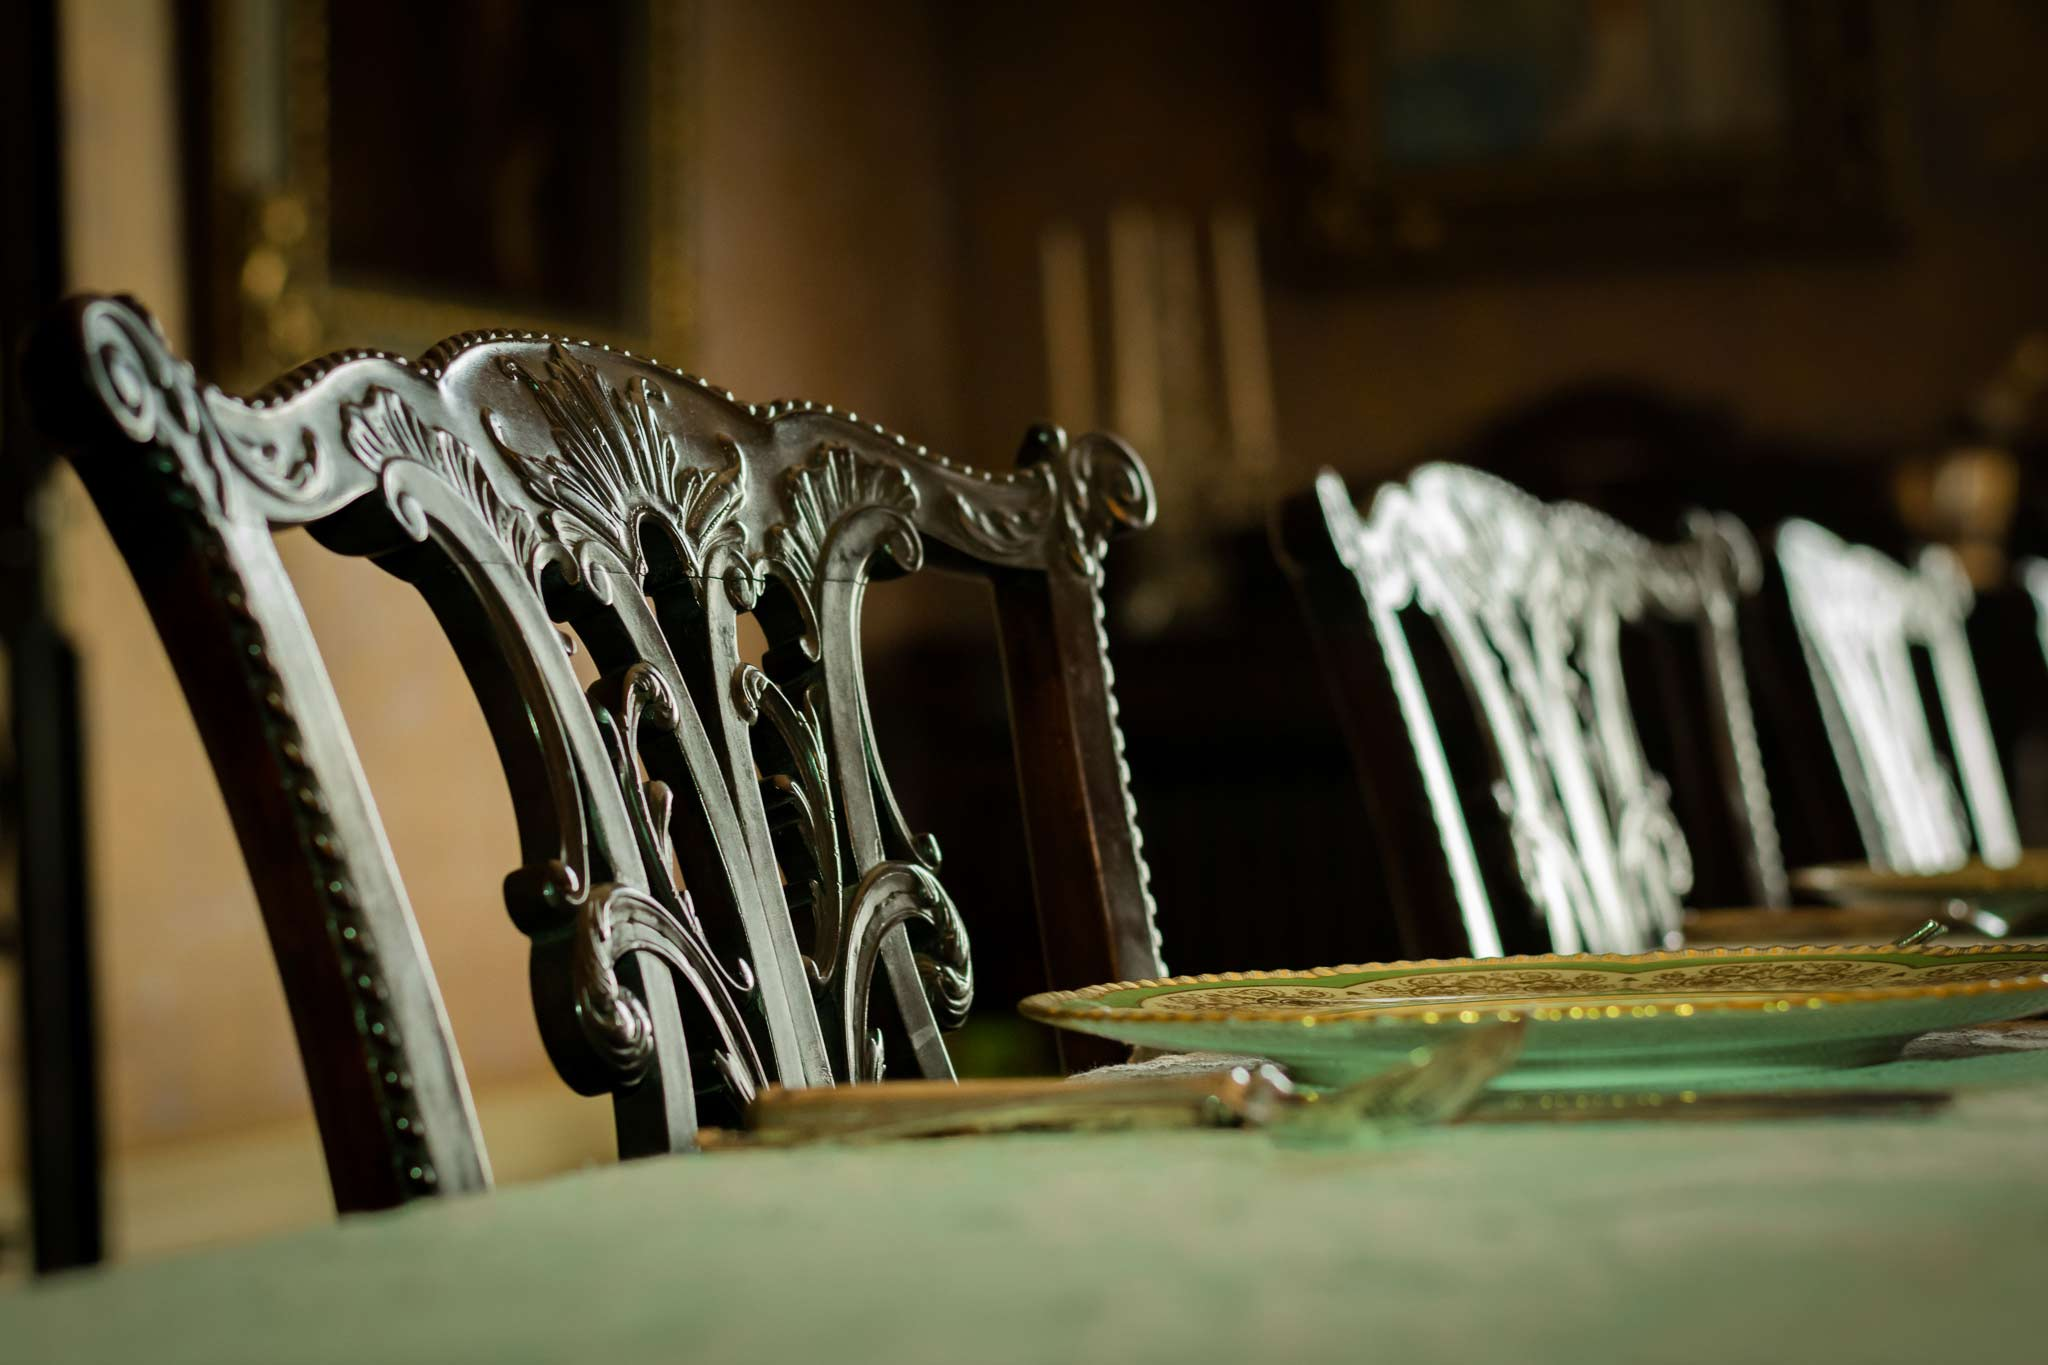 Ironwork chairs at a table